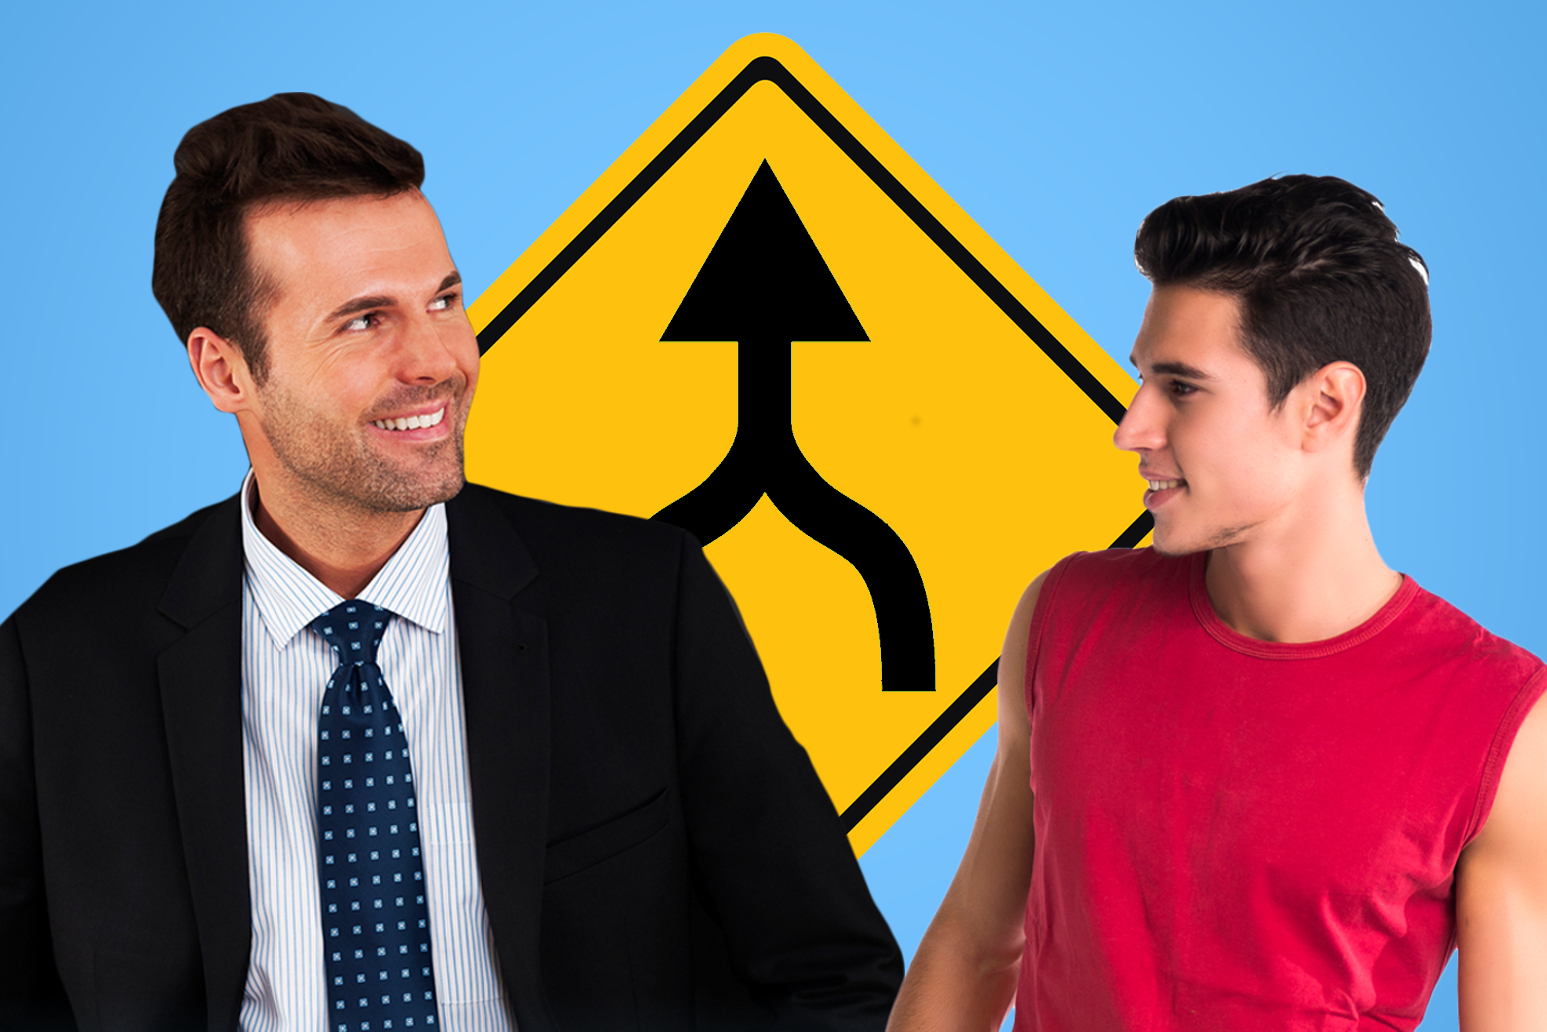 Middle-aged man in suit with younger guy in t-shirt in front of a merge sign